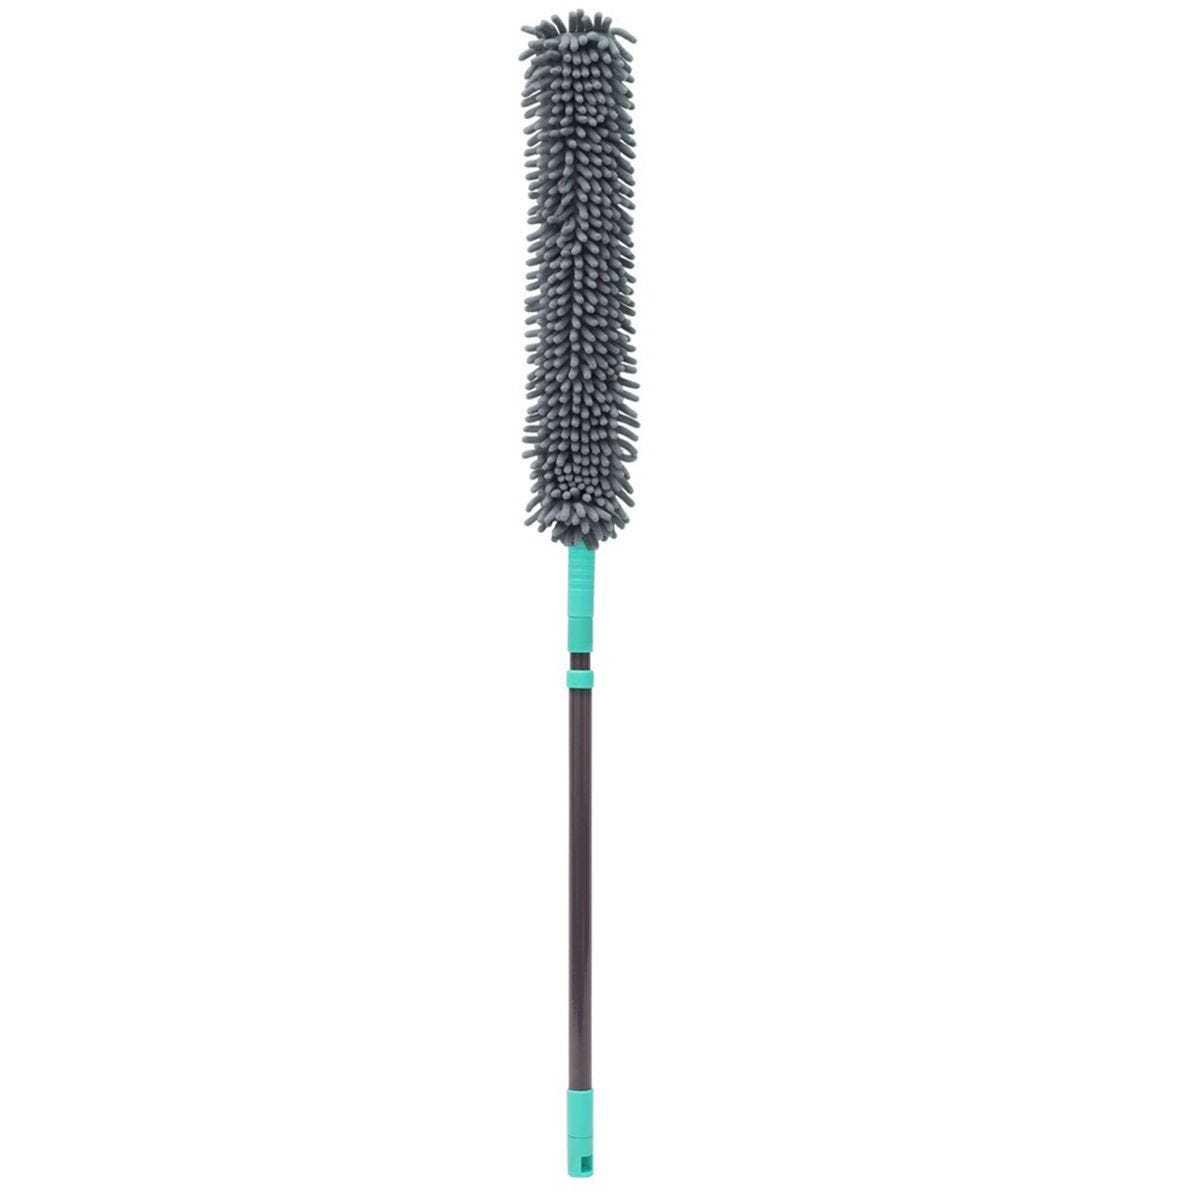 JVL Flexible Chenille Head Duster with Extendable Handle Grey/Turquoise